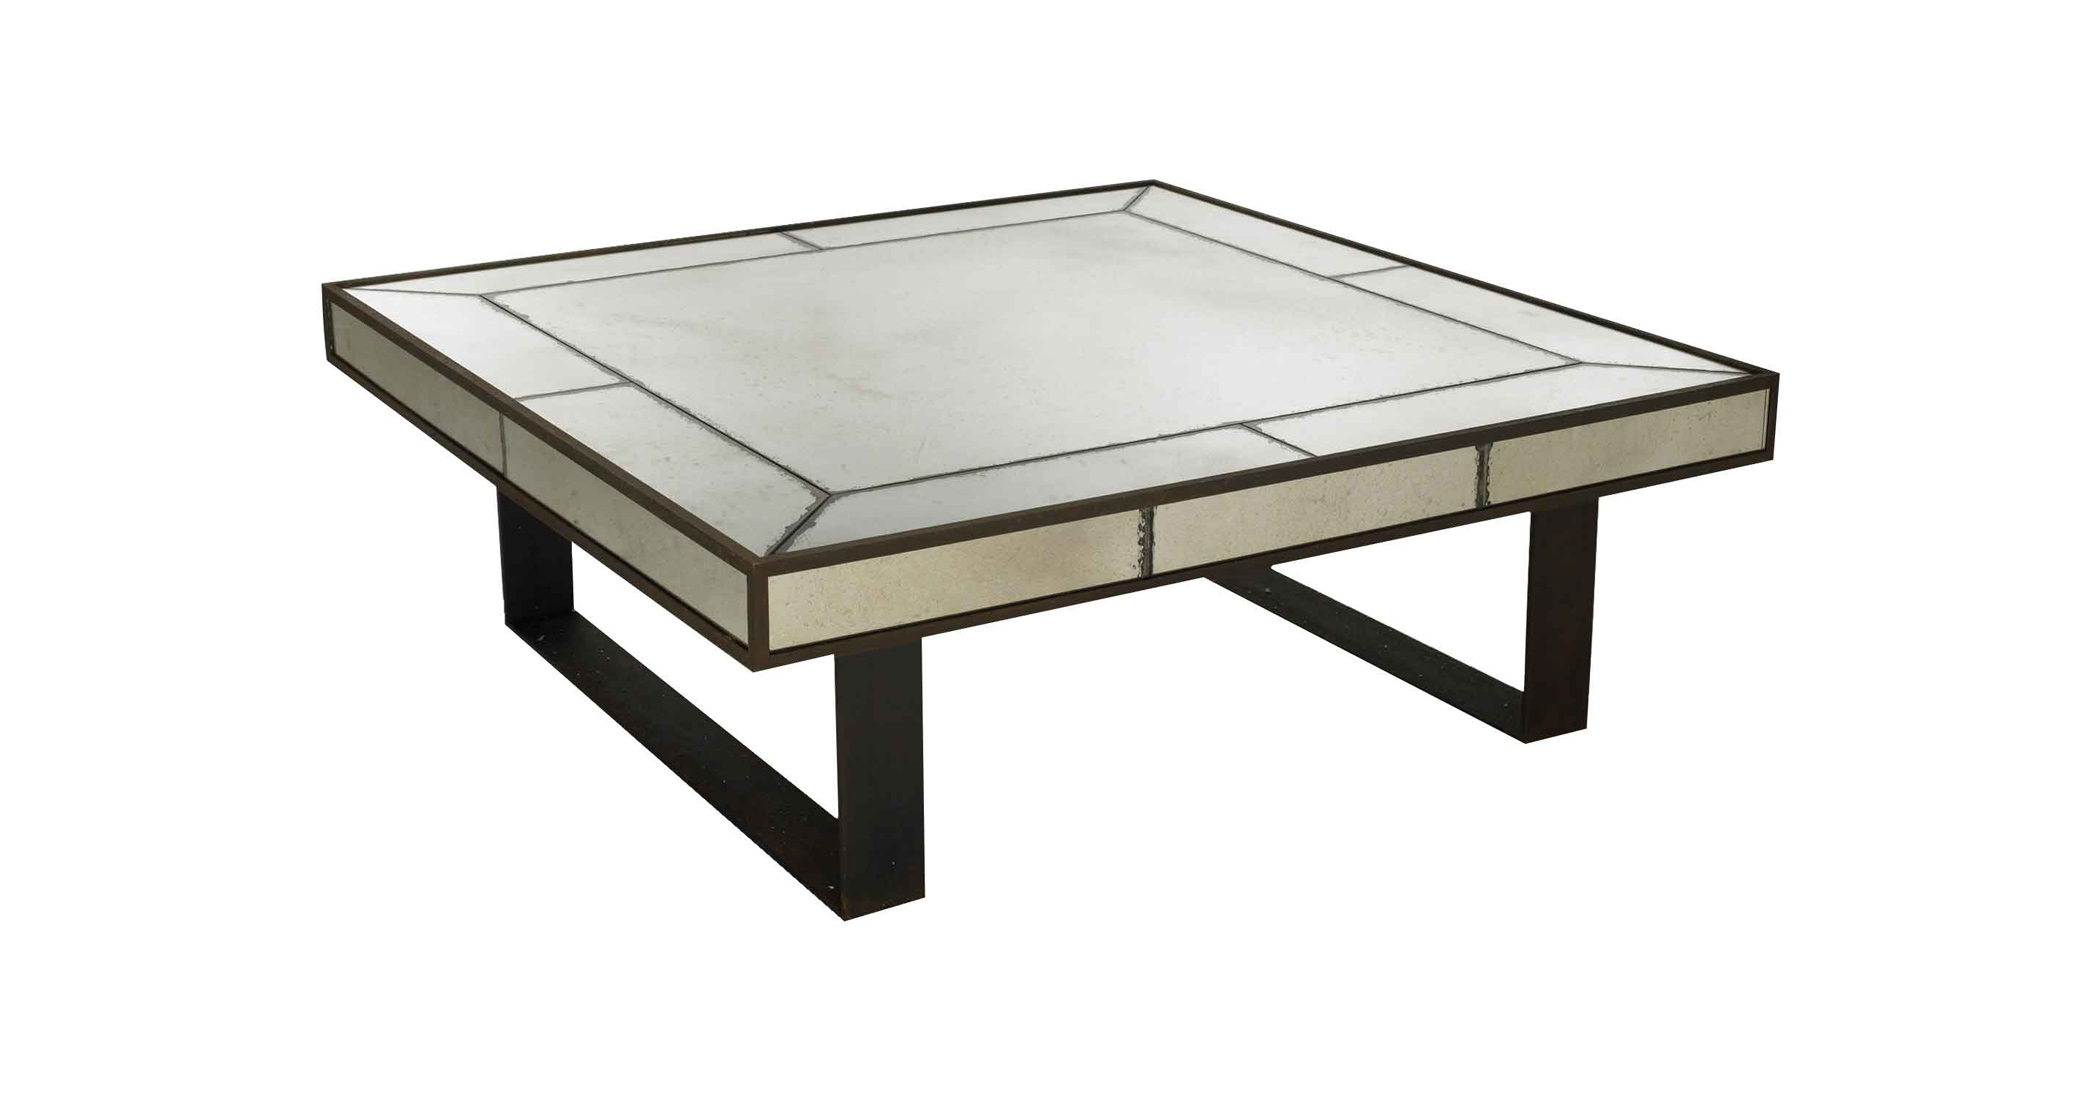 Mirrored Foyer Table | Mirrored Coffee Table | Mirrored Coffee Table Tray